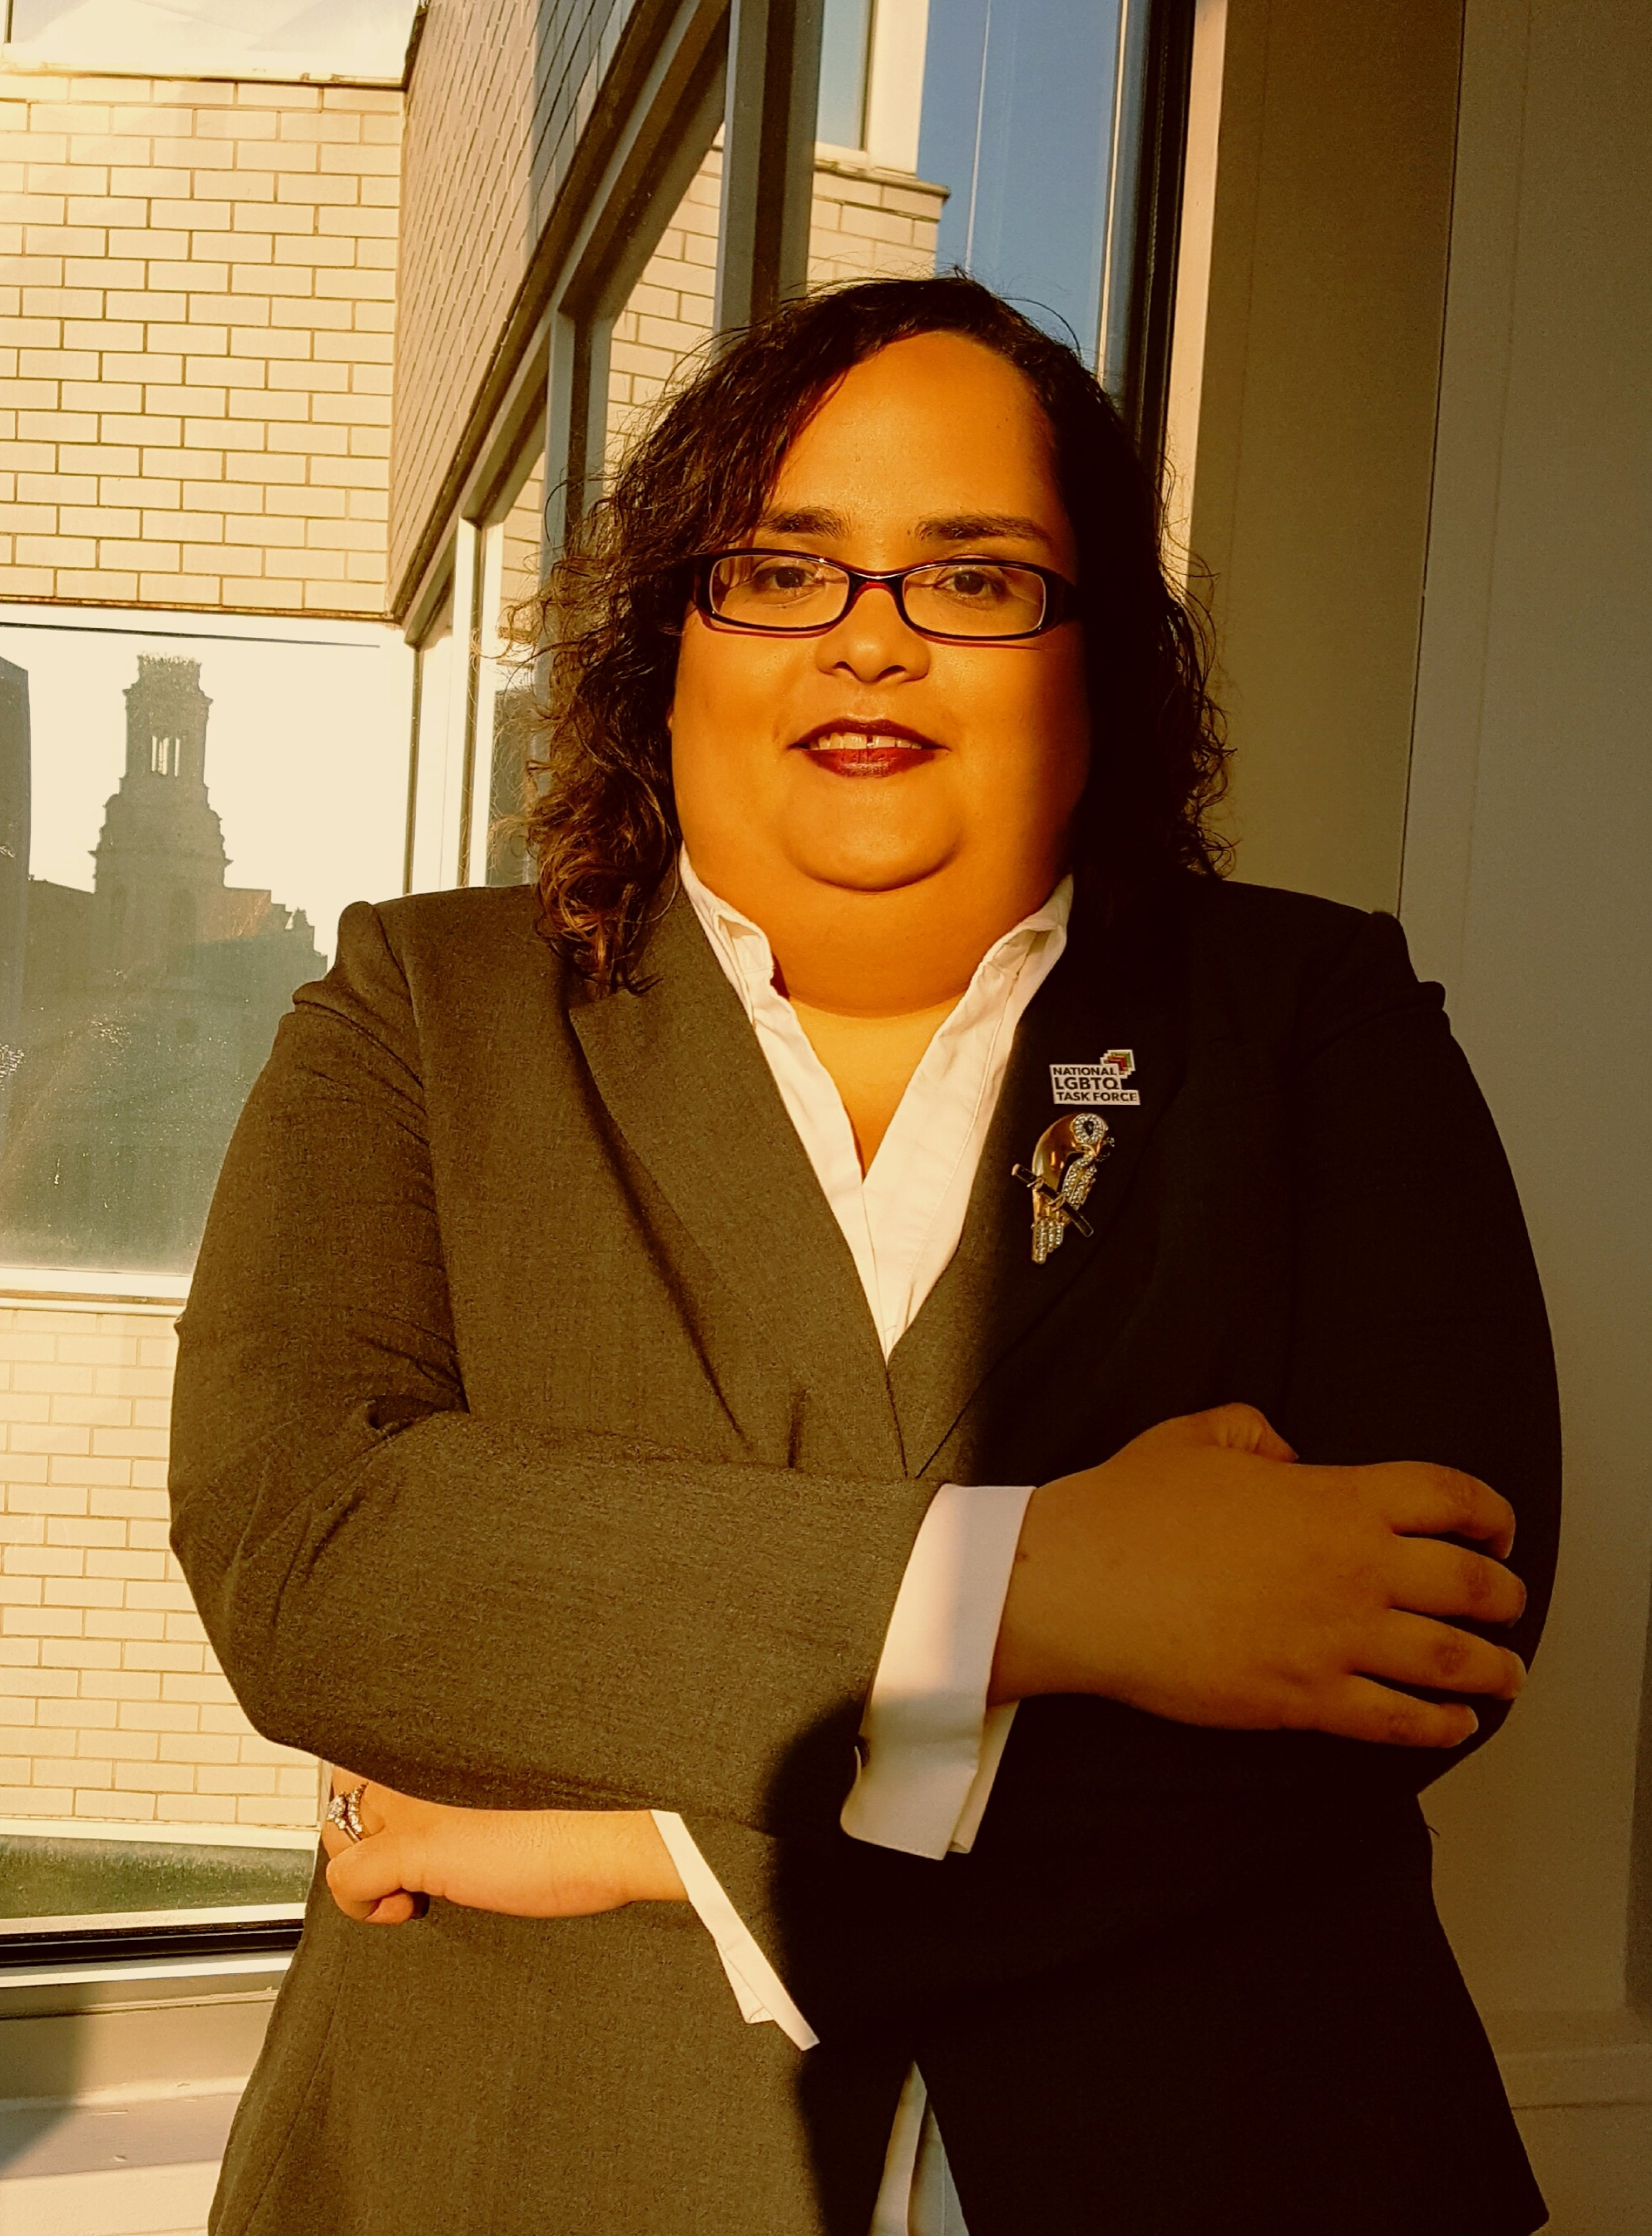 A Latina woman with square eyeglasses and red lips wearing a white shirt and black blazer stands with her arms crossed in front of a white brick building. The sun is lighting up her face and the right half of her body; her left arm is in shadow.